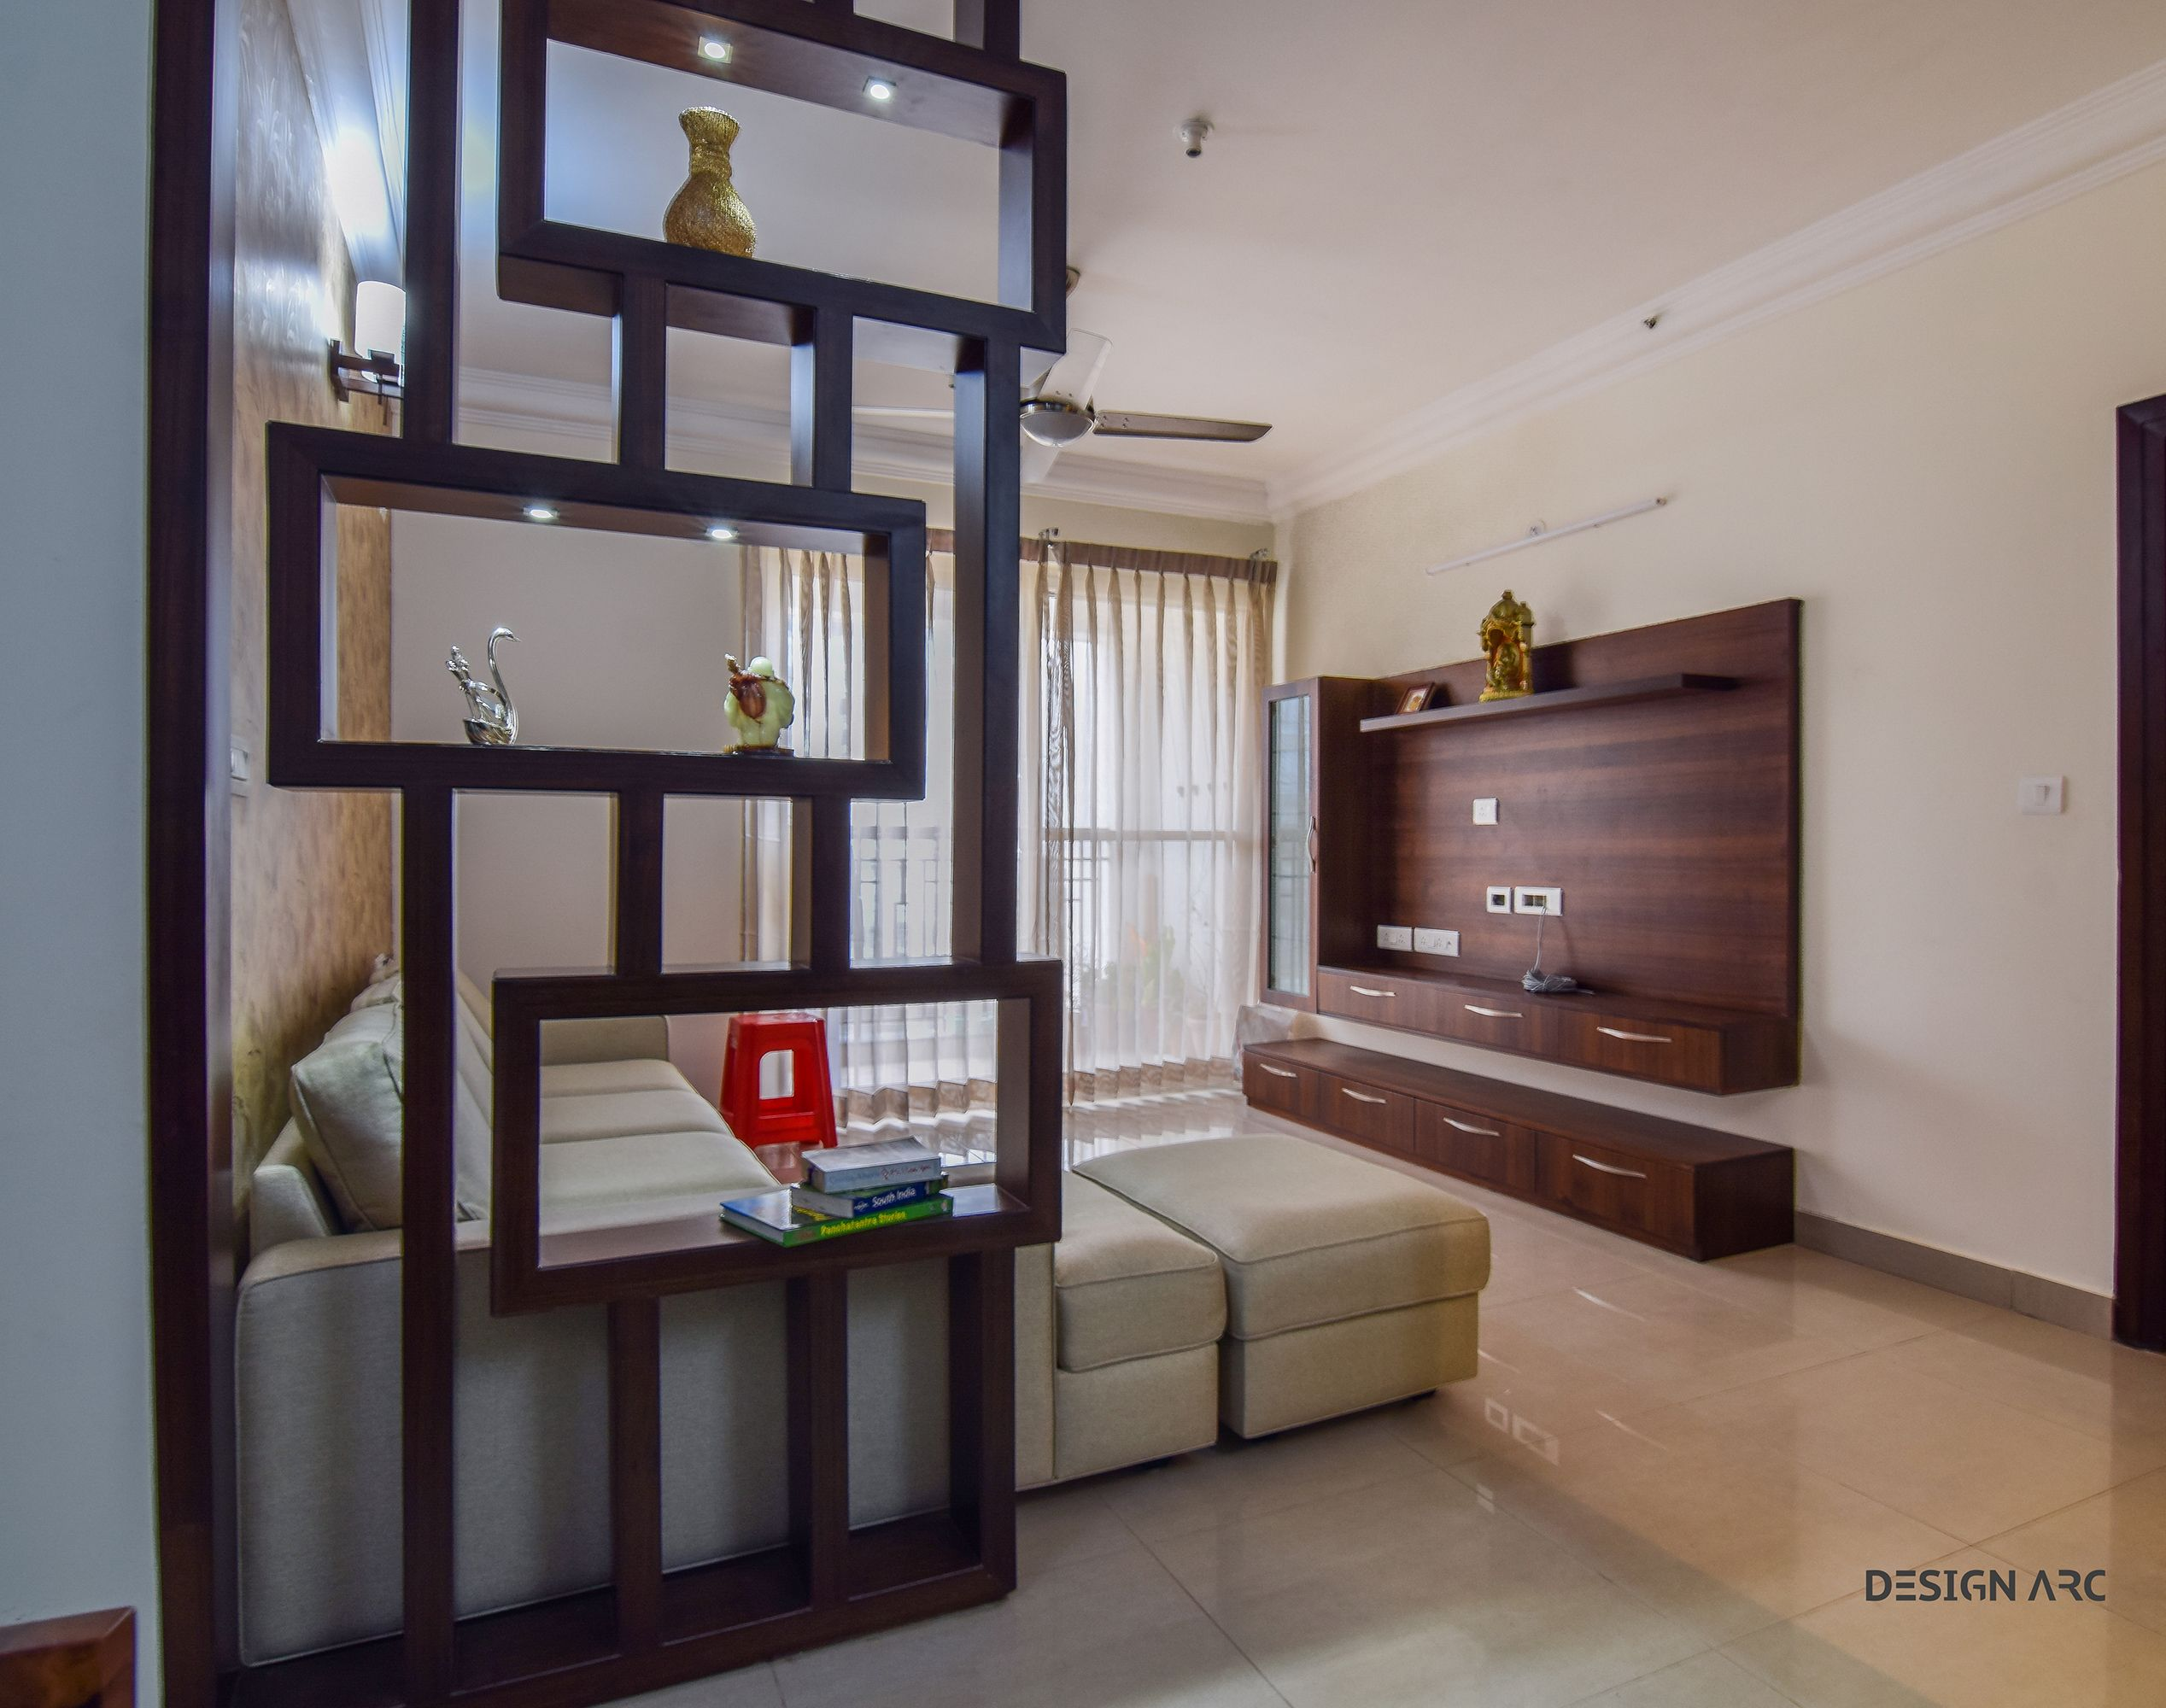 Interior design bangalore tv unit design concept living for Living room units designs